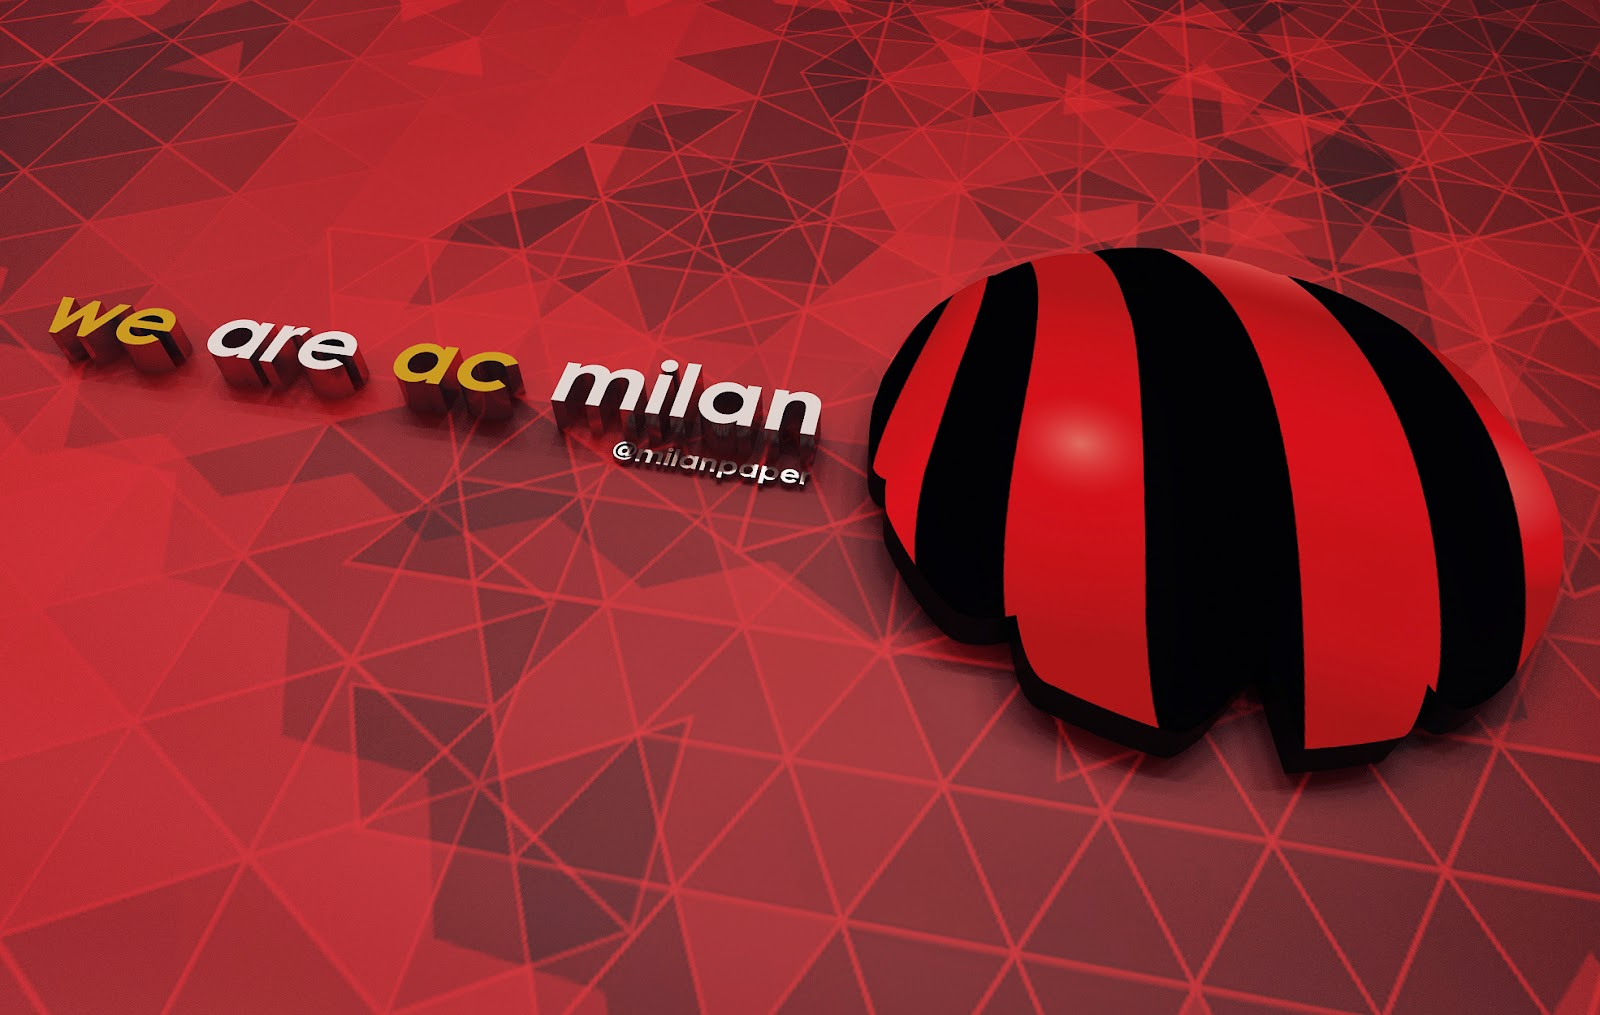 Hd wallpaper ac milan - Ac Milan Smartphone Wallpaper